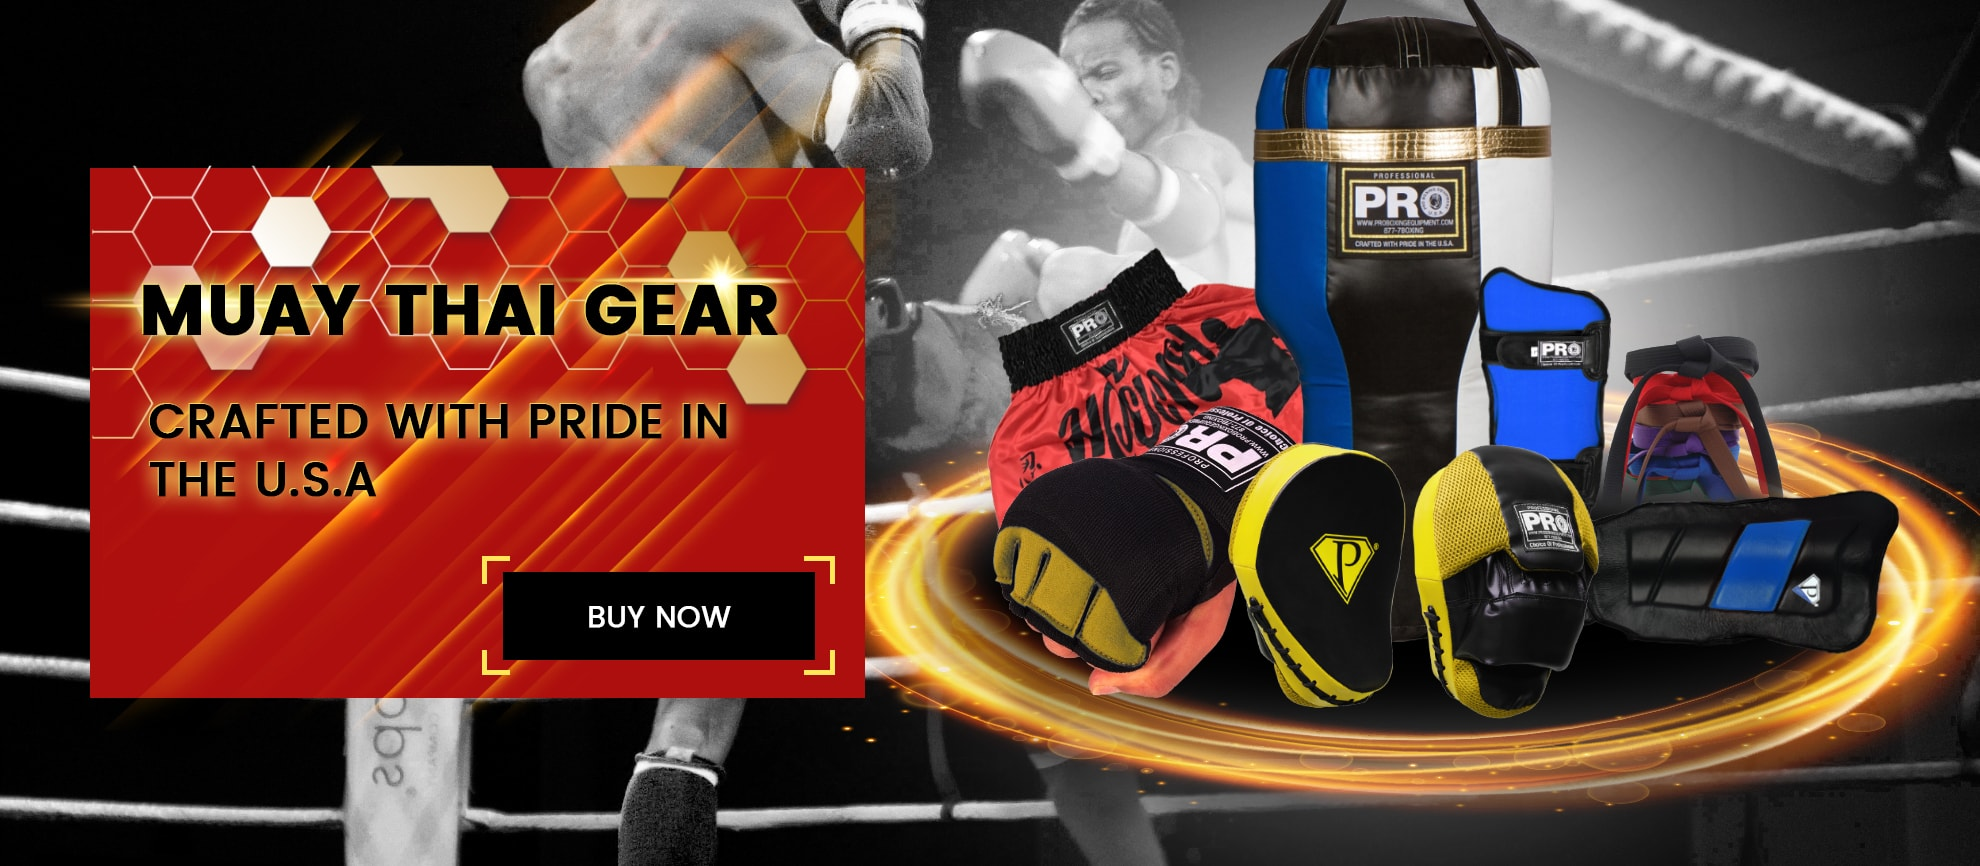 PRO Boxing Equipment – Pro Boxing Gear for Sale